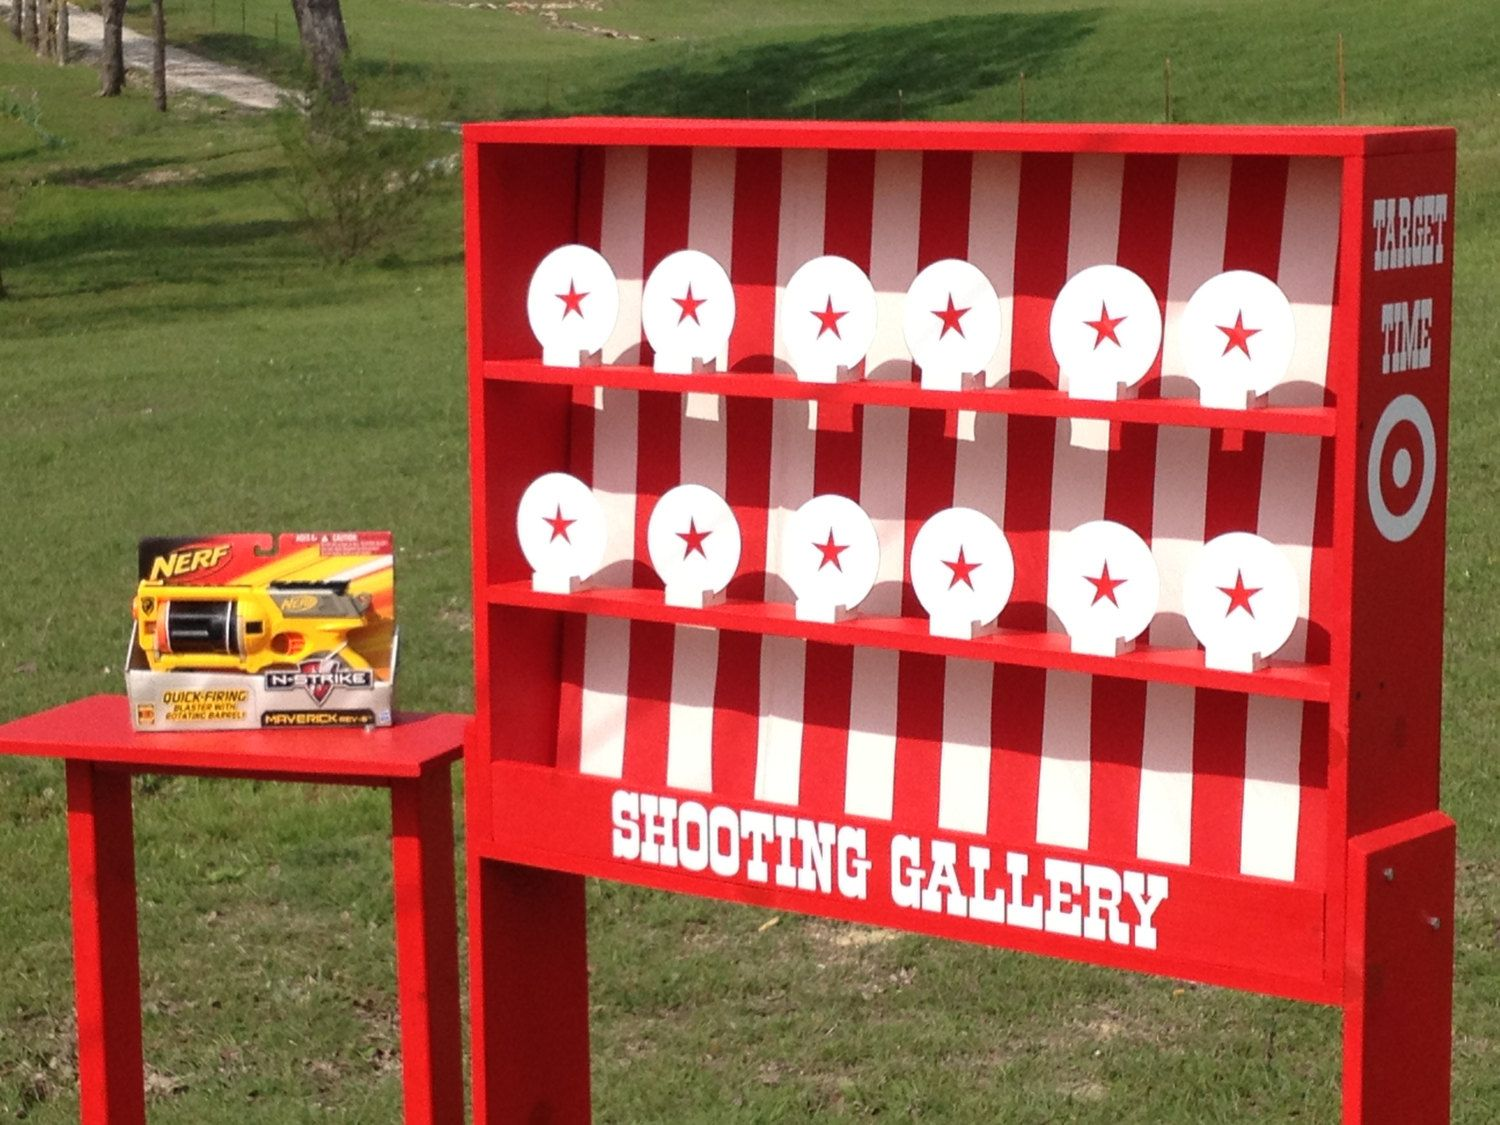 Shooting Gallery Carnival Game compatible with Nerf guns. Trade Show, Rental,  Birthday, Church, VBS or School Party. Carnival Games